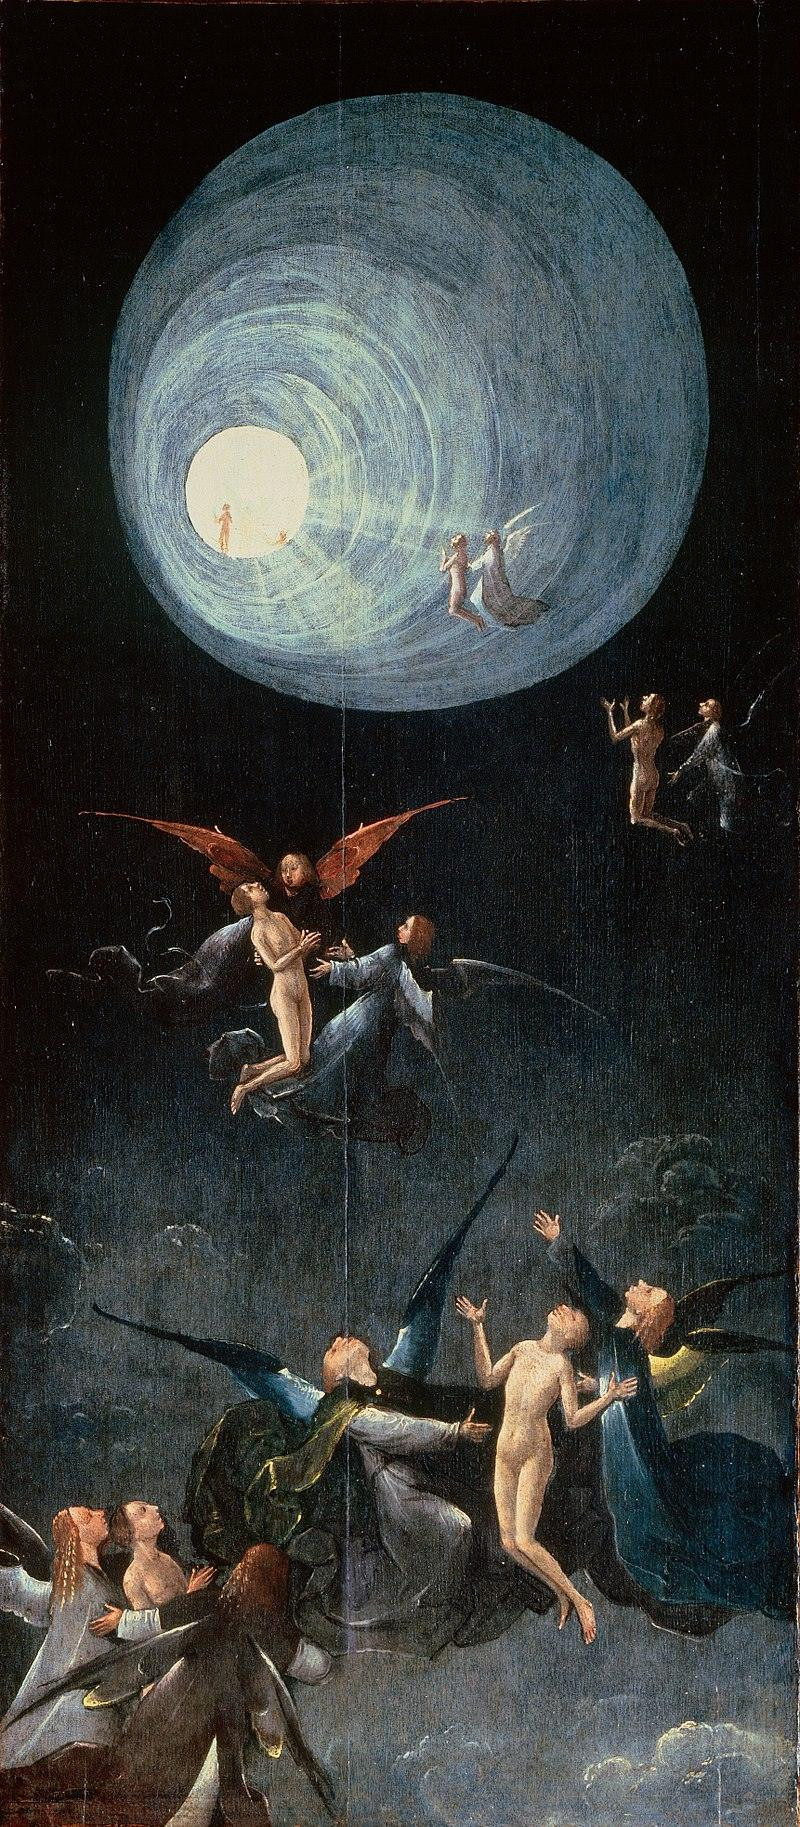 Heironymus Bosch's depiction of the Ascension